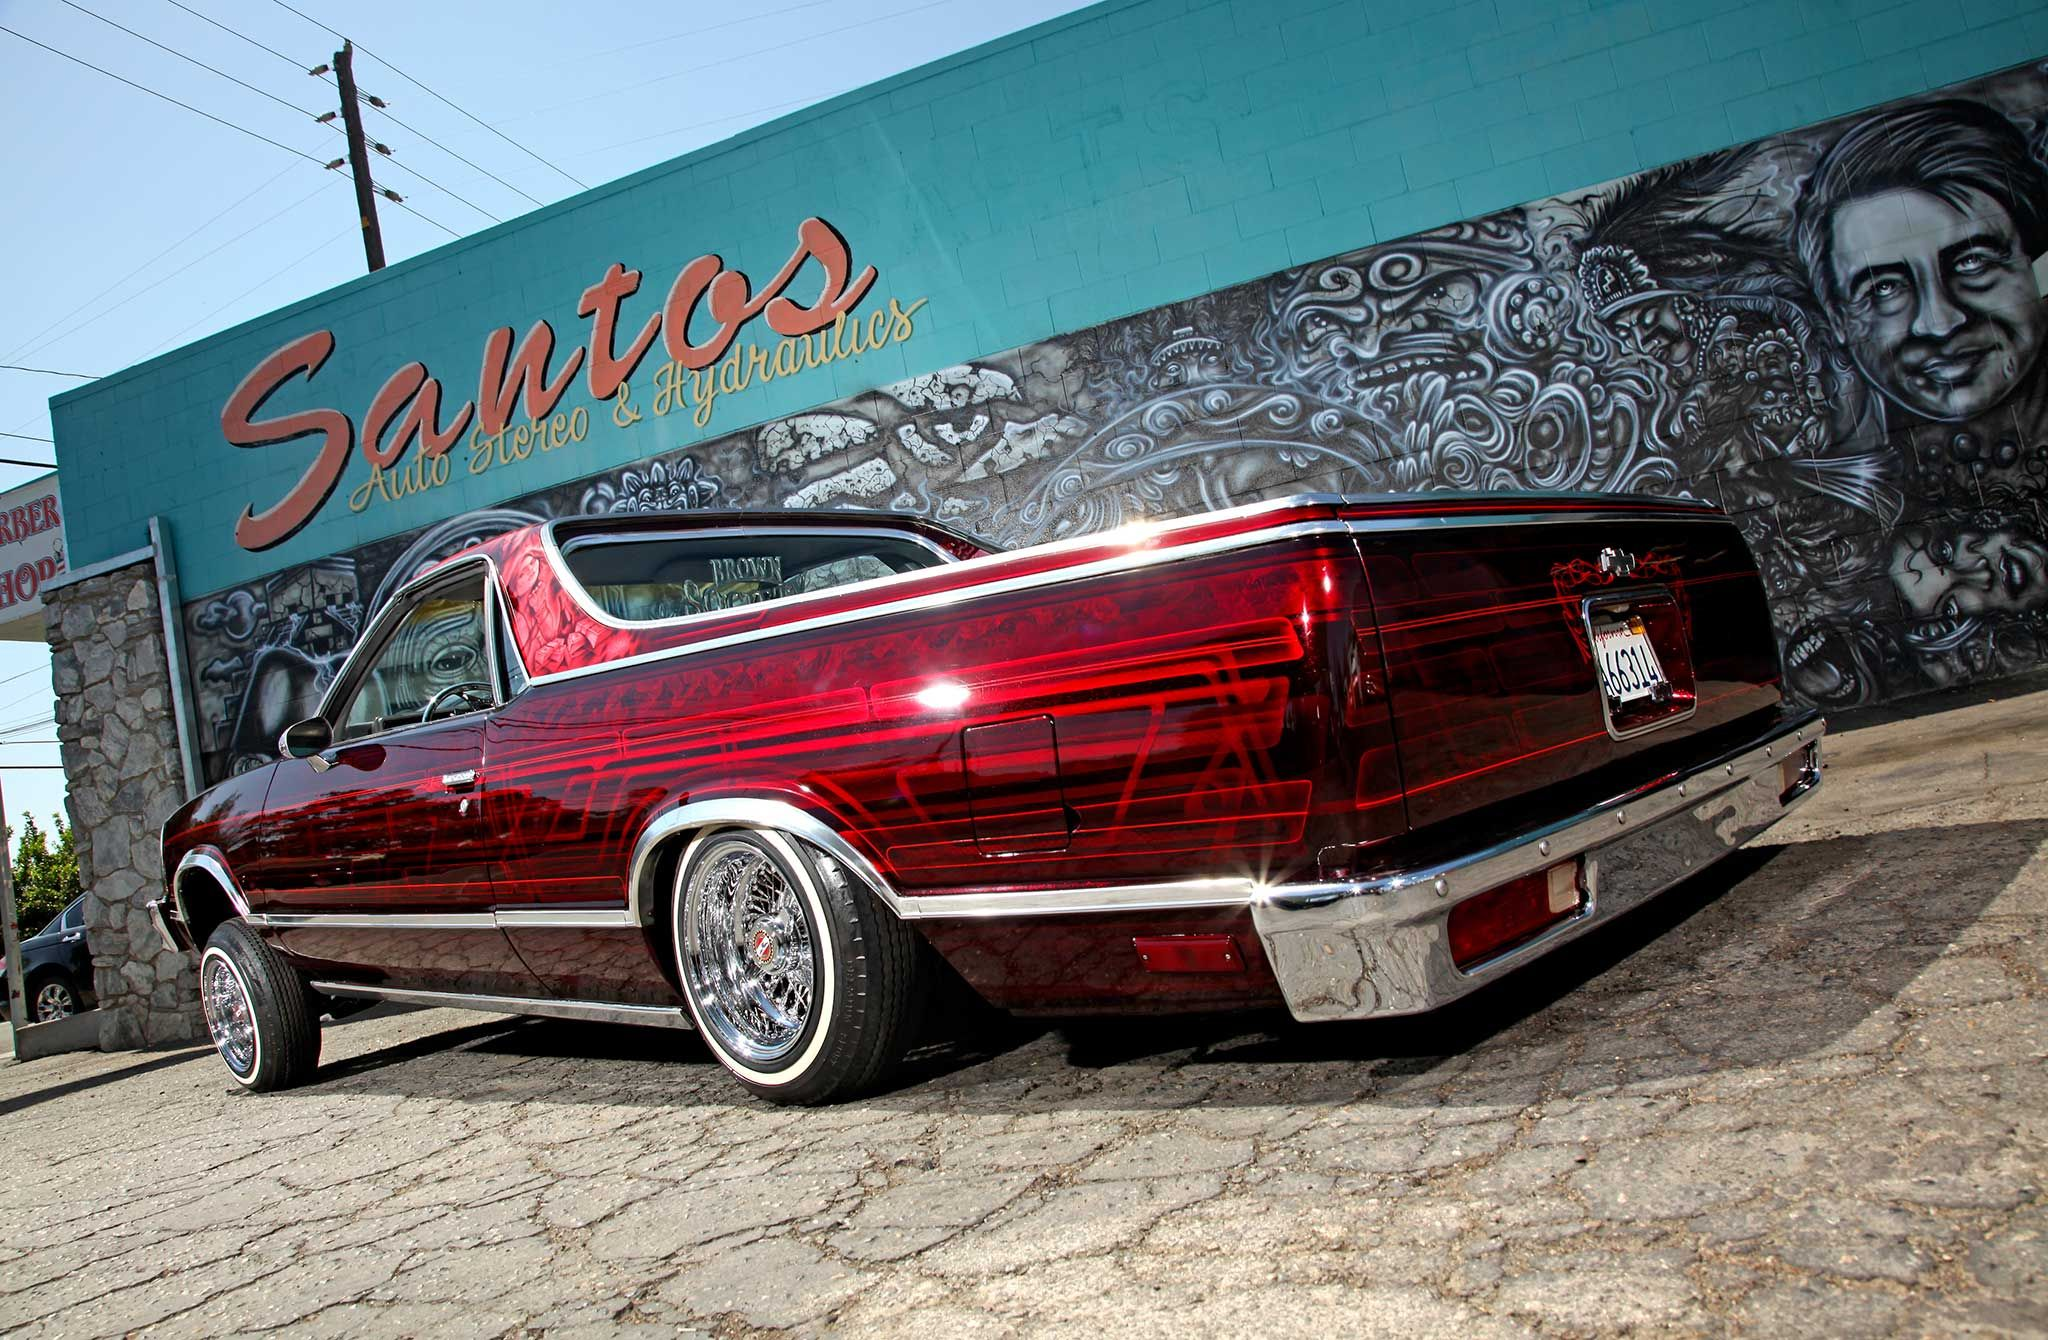 1985 Chevrolet El Camino The Elco Holic Lowrider Lowriders Cool Old Cars Lowrider Cars